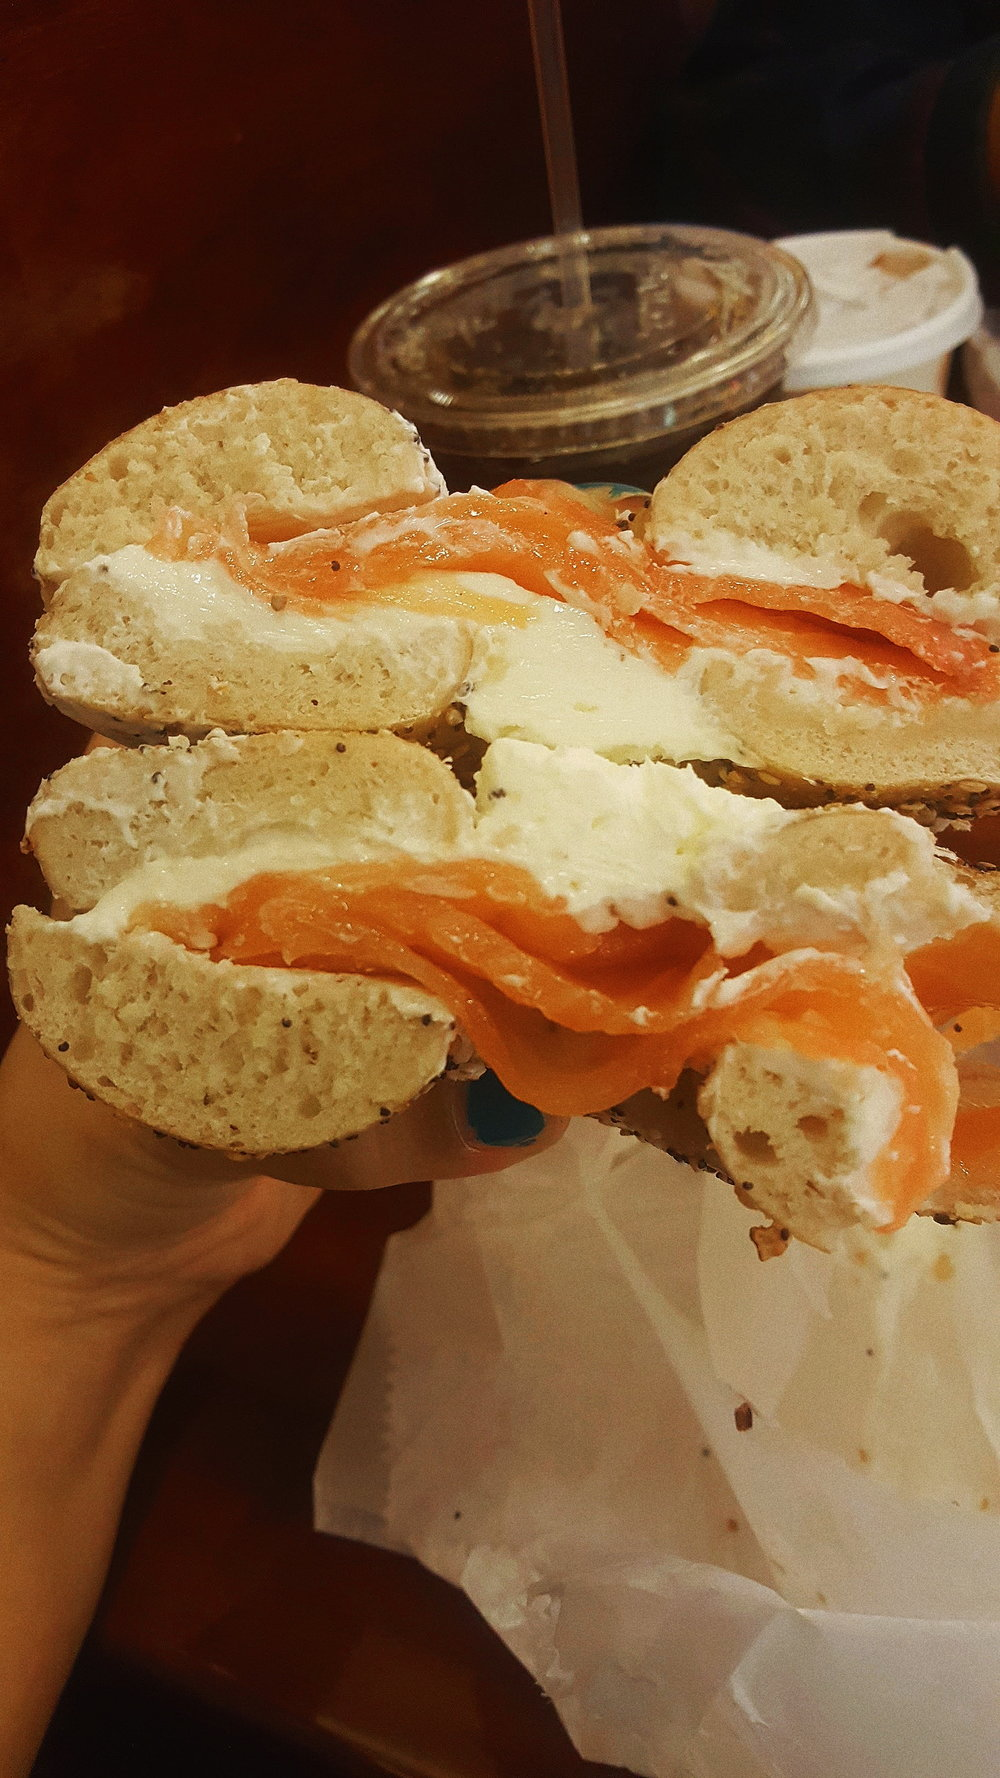 Saturday morning lox at Tal Bagels. The Best bagel shop on the UWS. Roughly $12, or you can head to your local food truck for a toasted Everything bagel w/ cream cheese for $2.